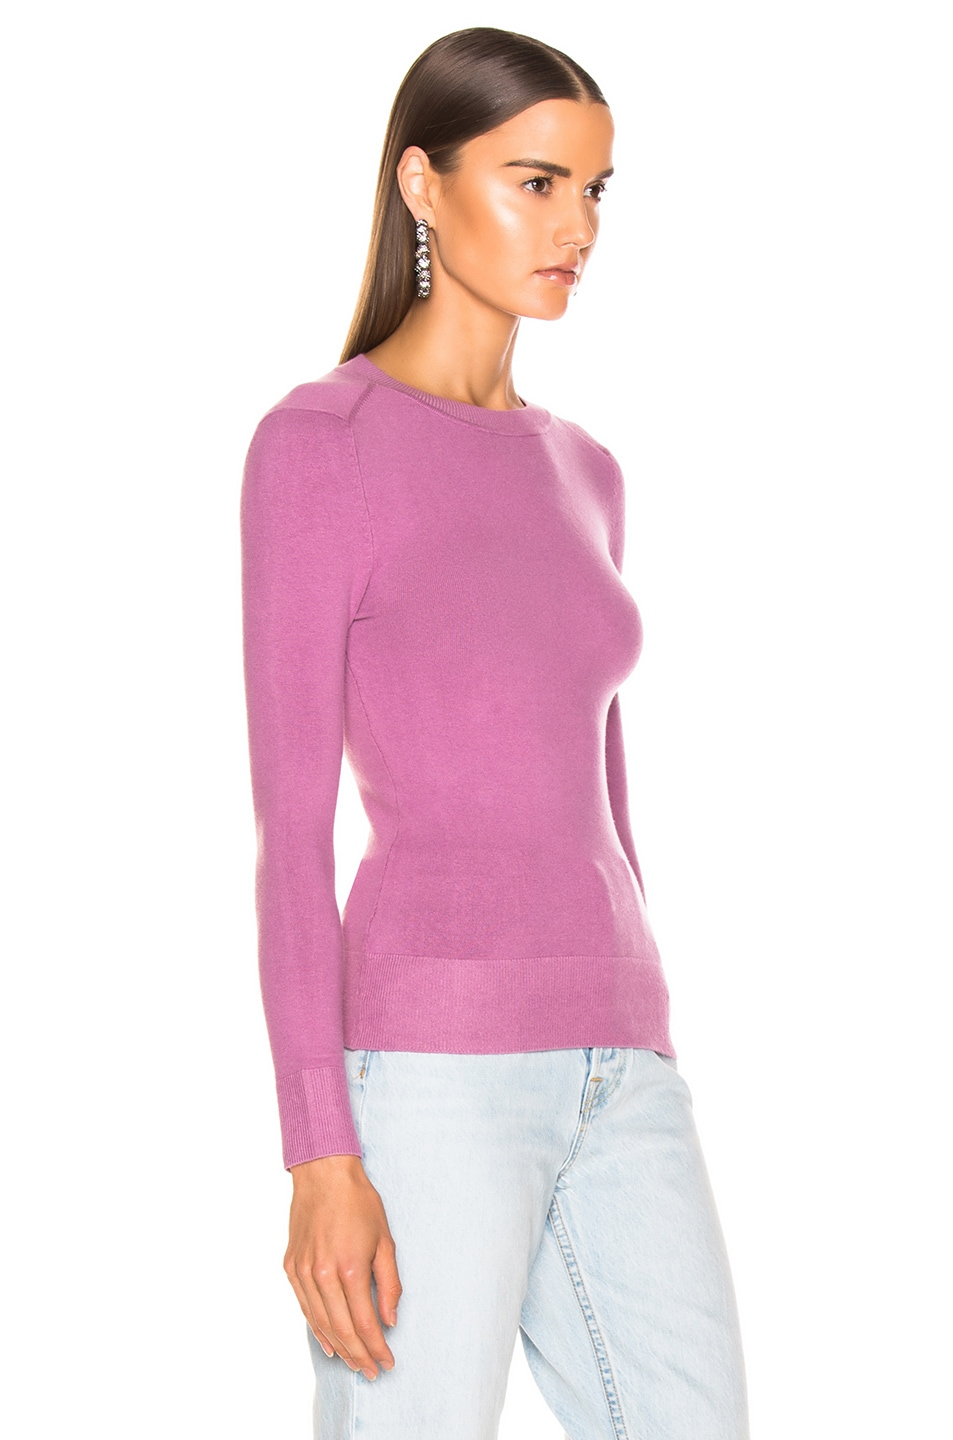 Image 2 of JoosTricot Long Sleeve Crew Neck in Orchid Dusk